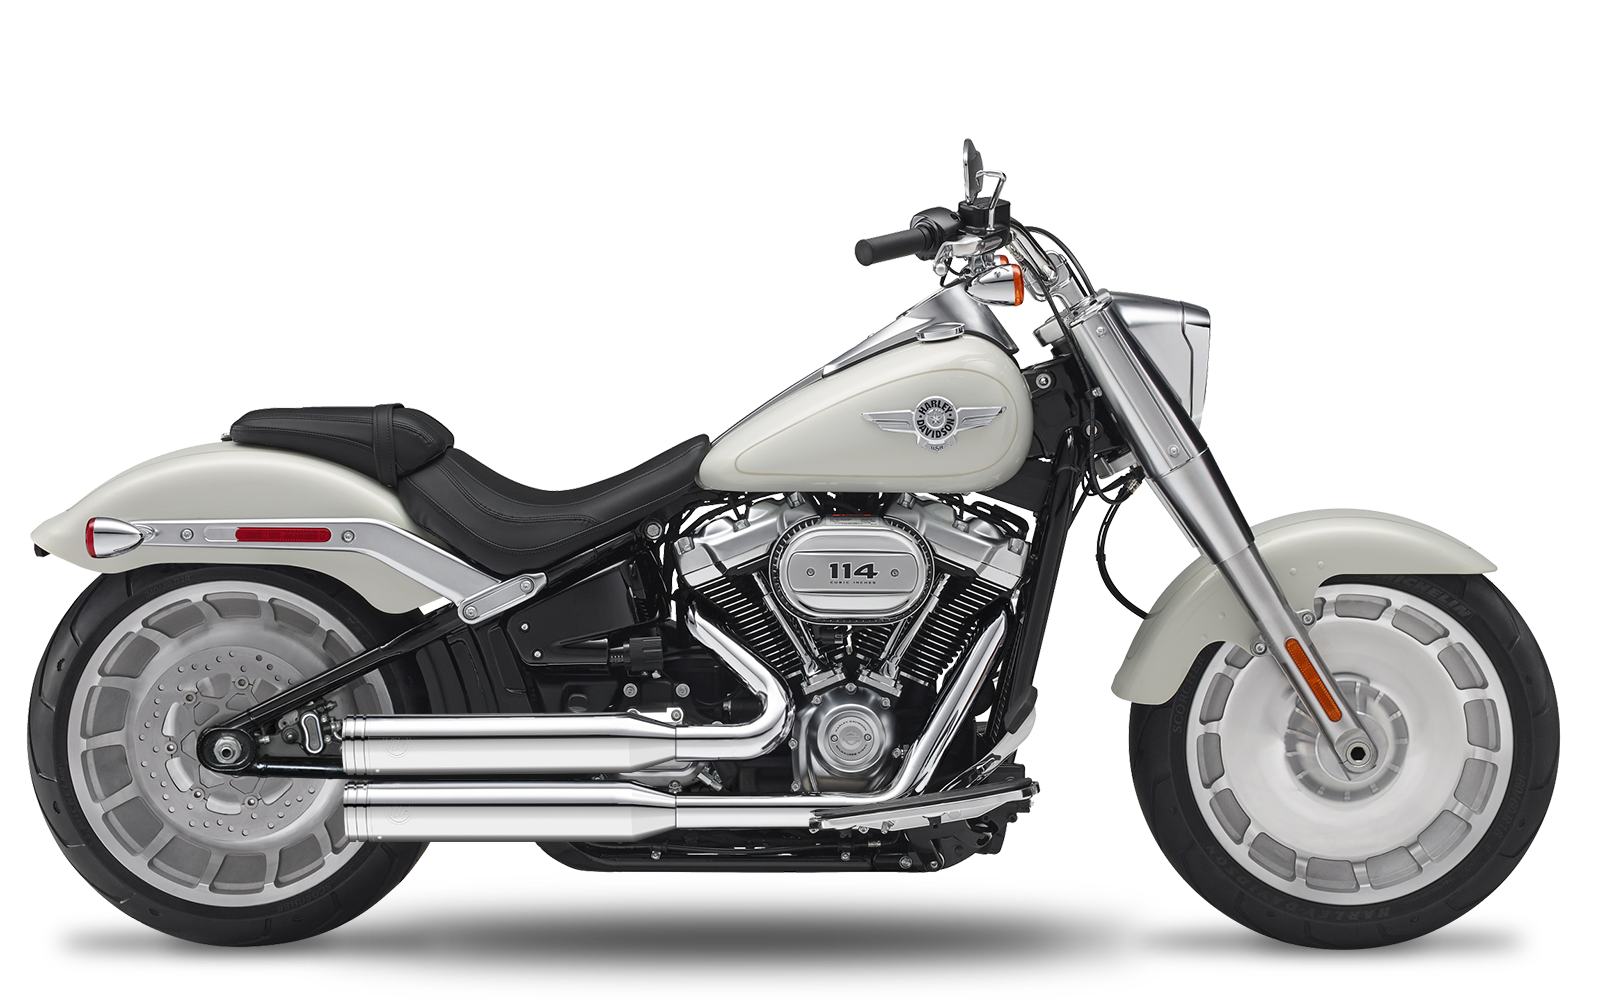 Softail - Fat Boy - ME107 - 2018-2020 - Complete systems adjustable